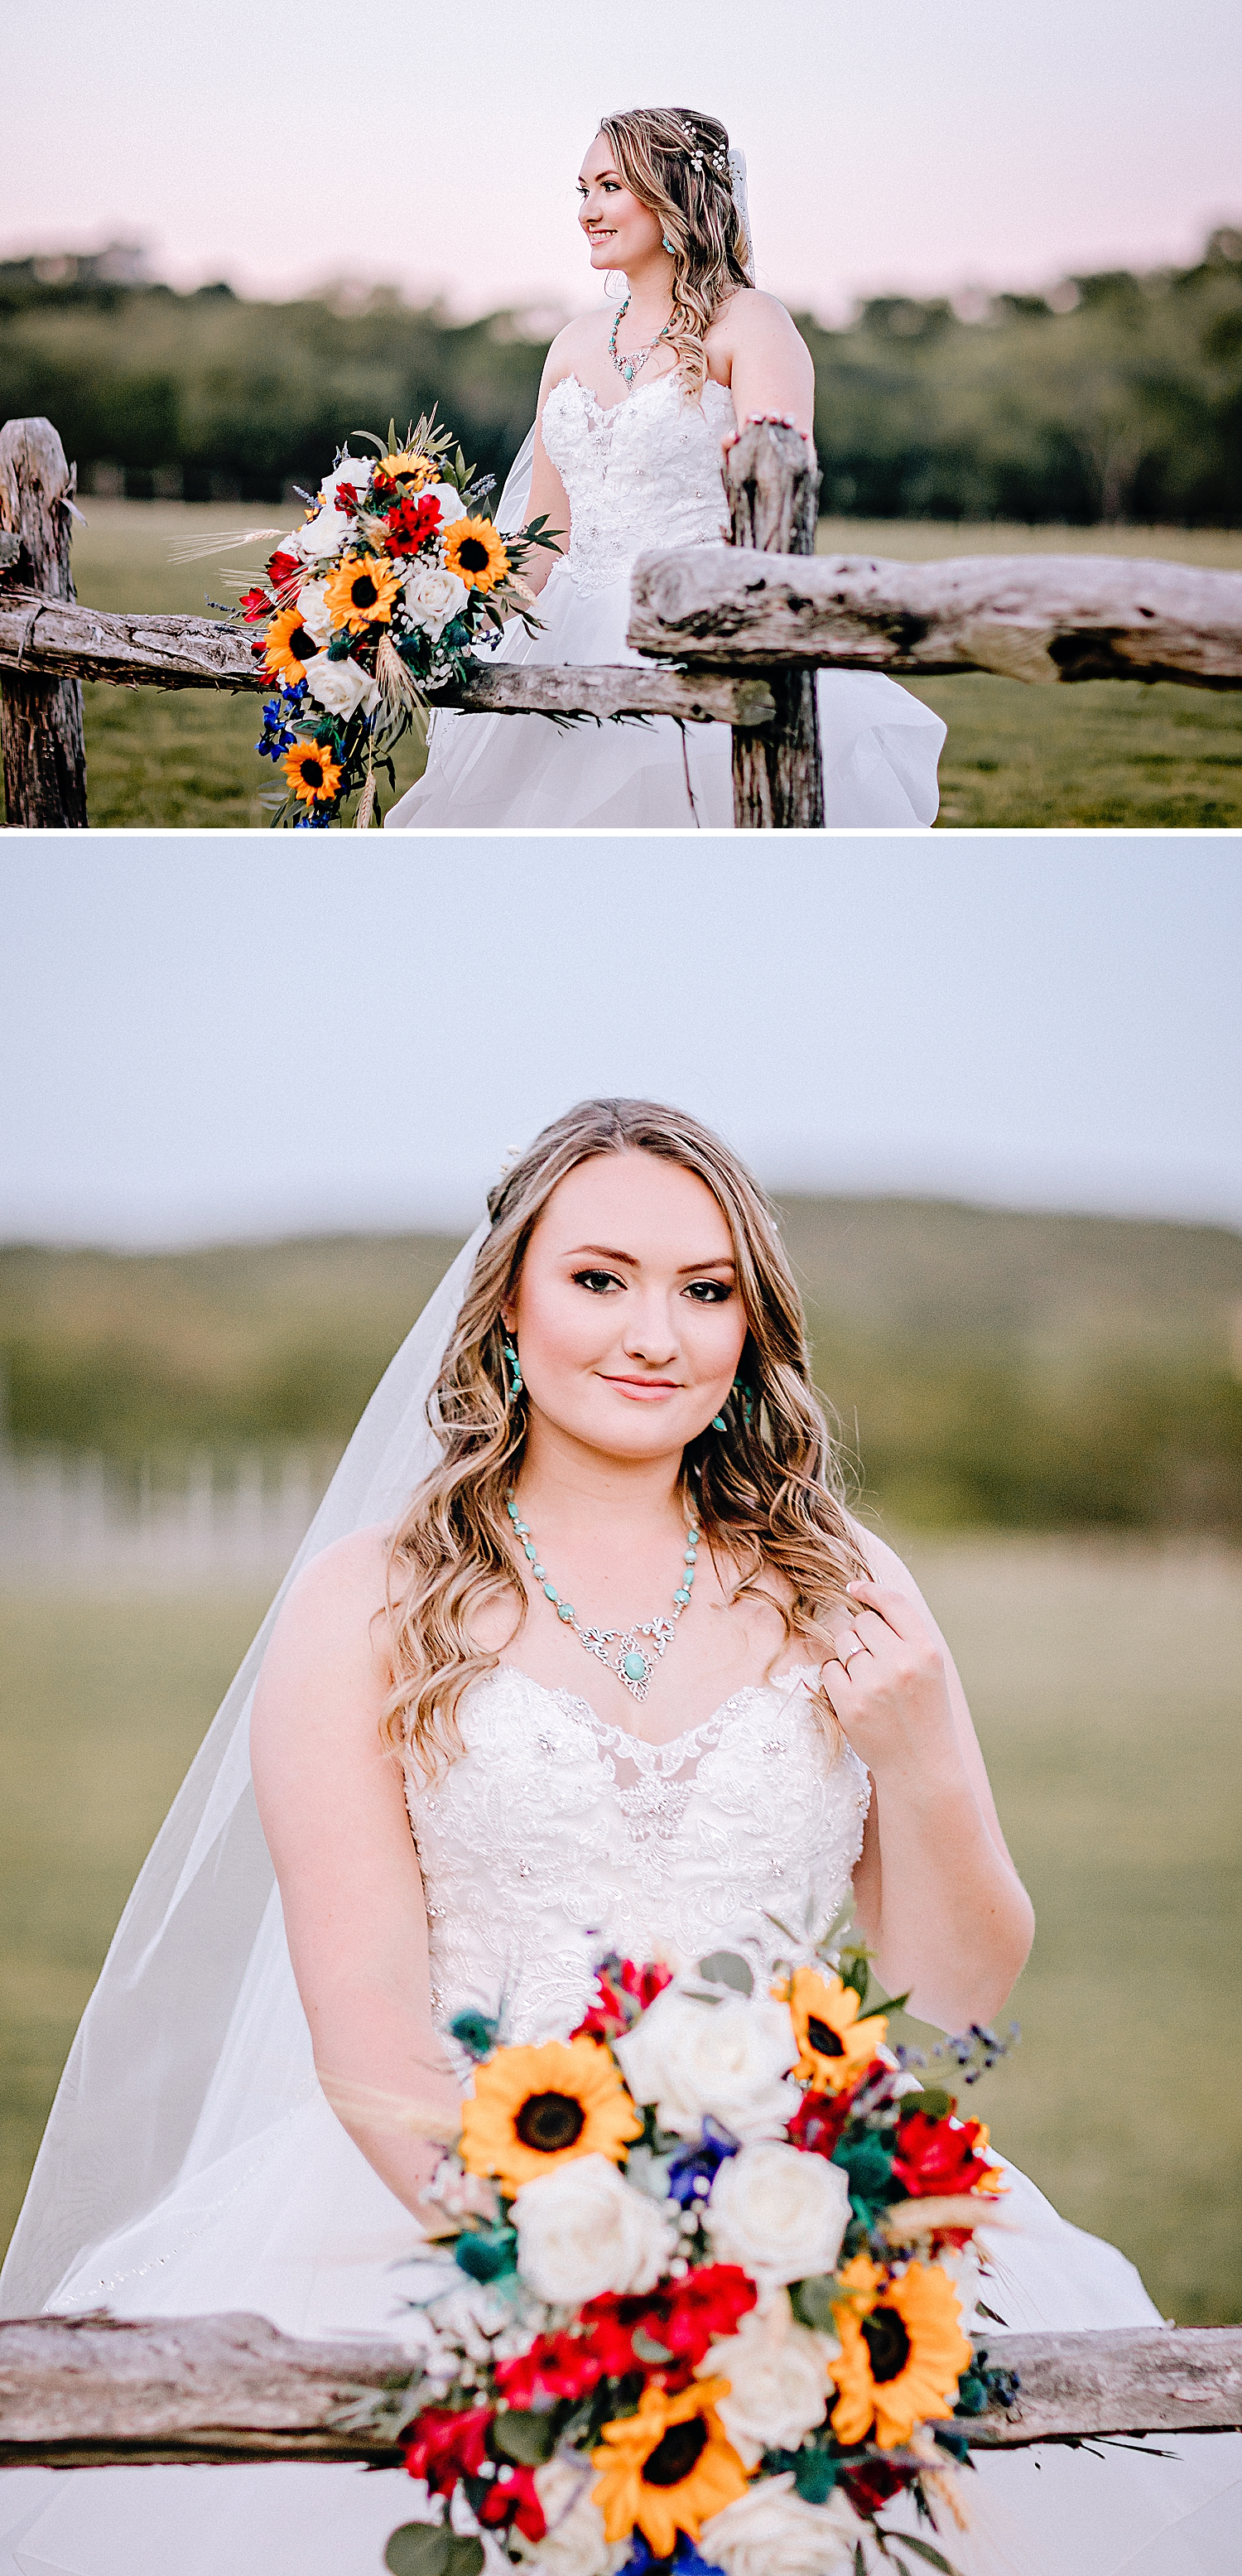 Carly-Barton-Photography-Texas-Bridals-Boerne-Rustic-Wedding-Photos_0019.jpg